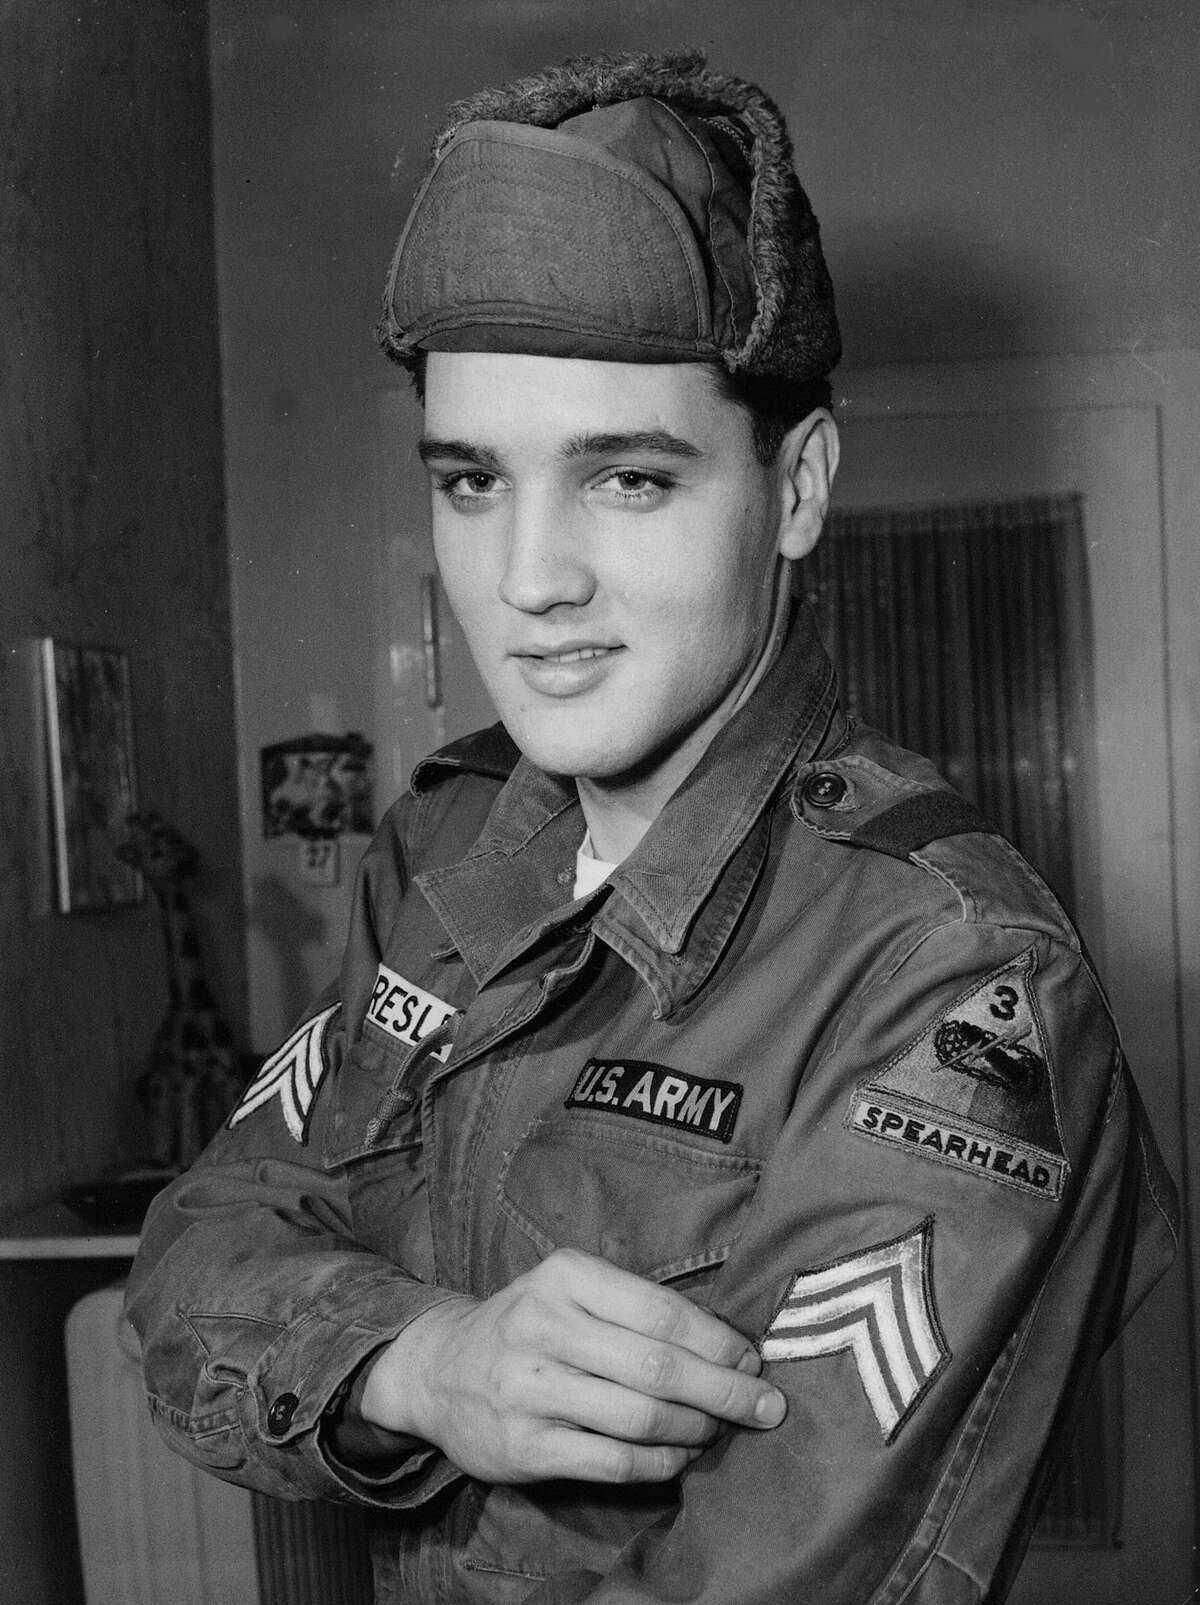 Elvis Presley - (U.S. Army 1958-60) Served two years of active duty and four years in the Reserve. www.military.com